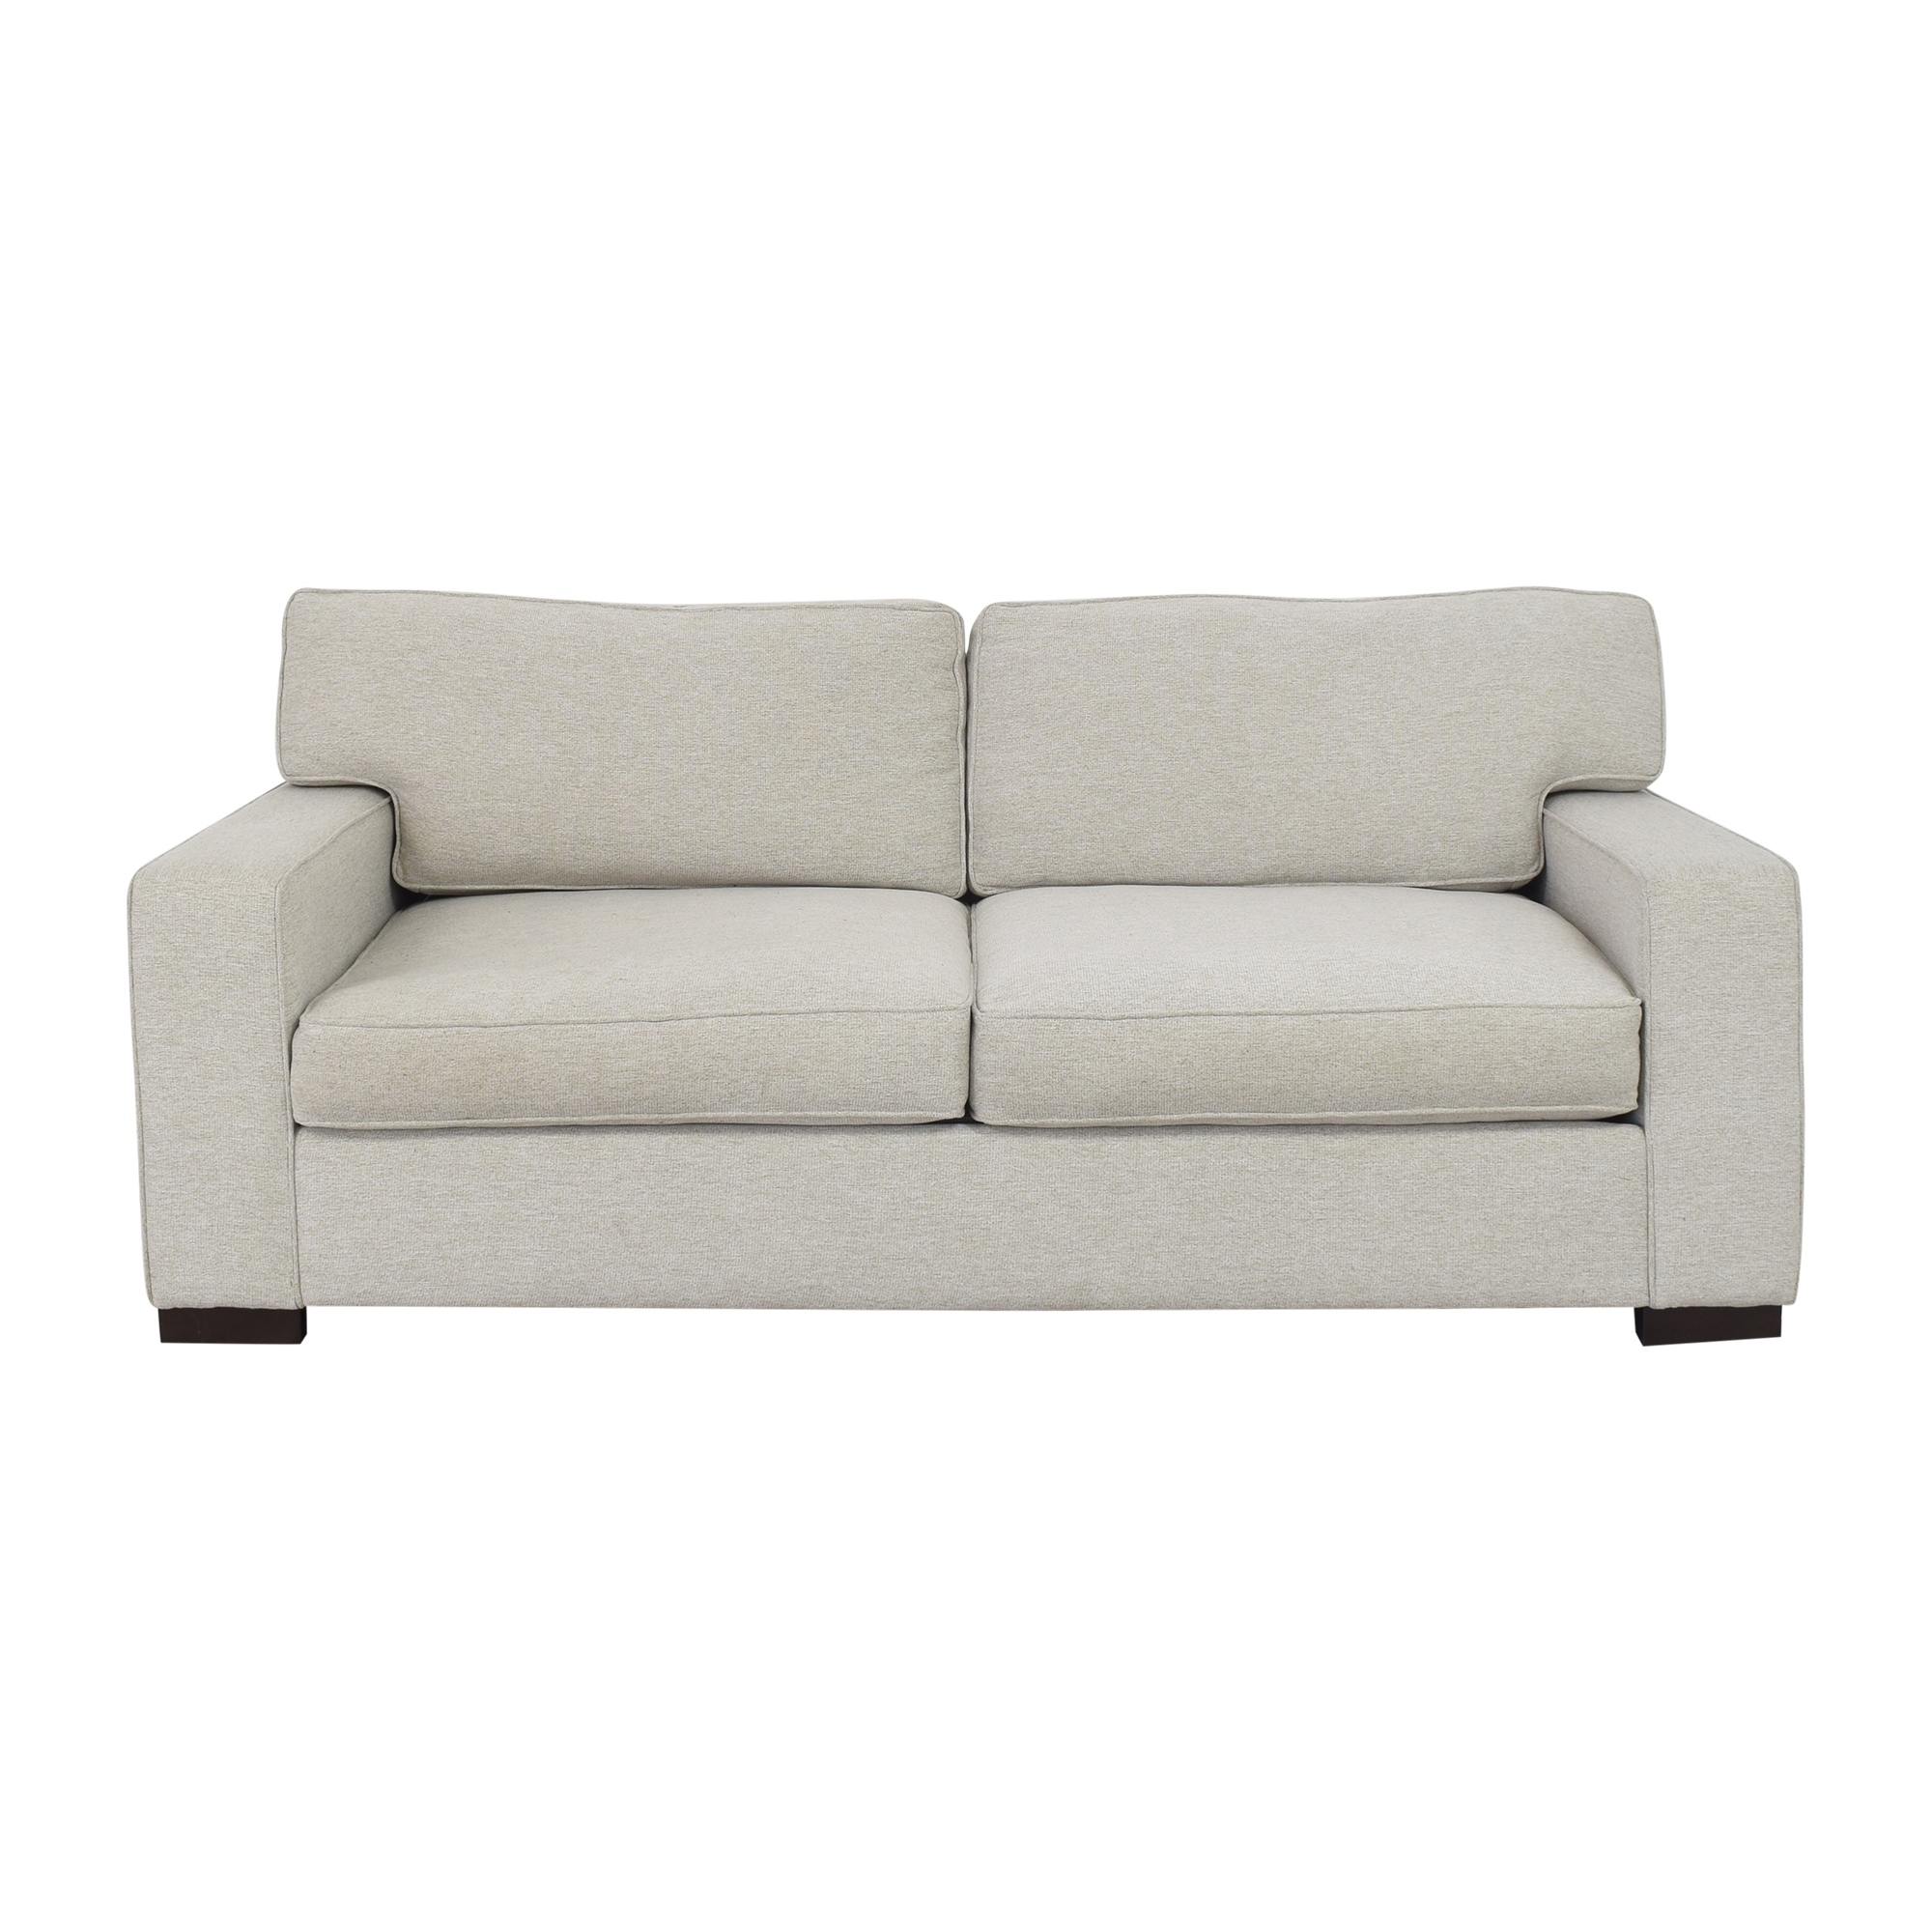 Max Home Wellesley Two Cushion Sofa / Classic Sofas